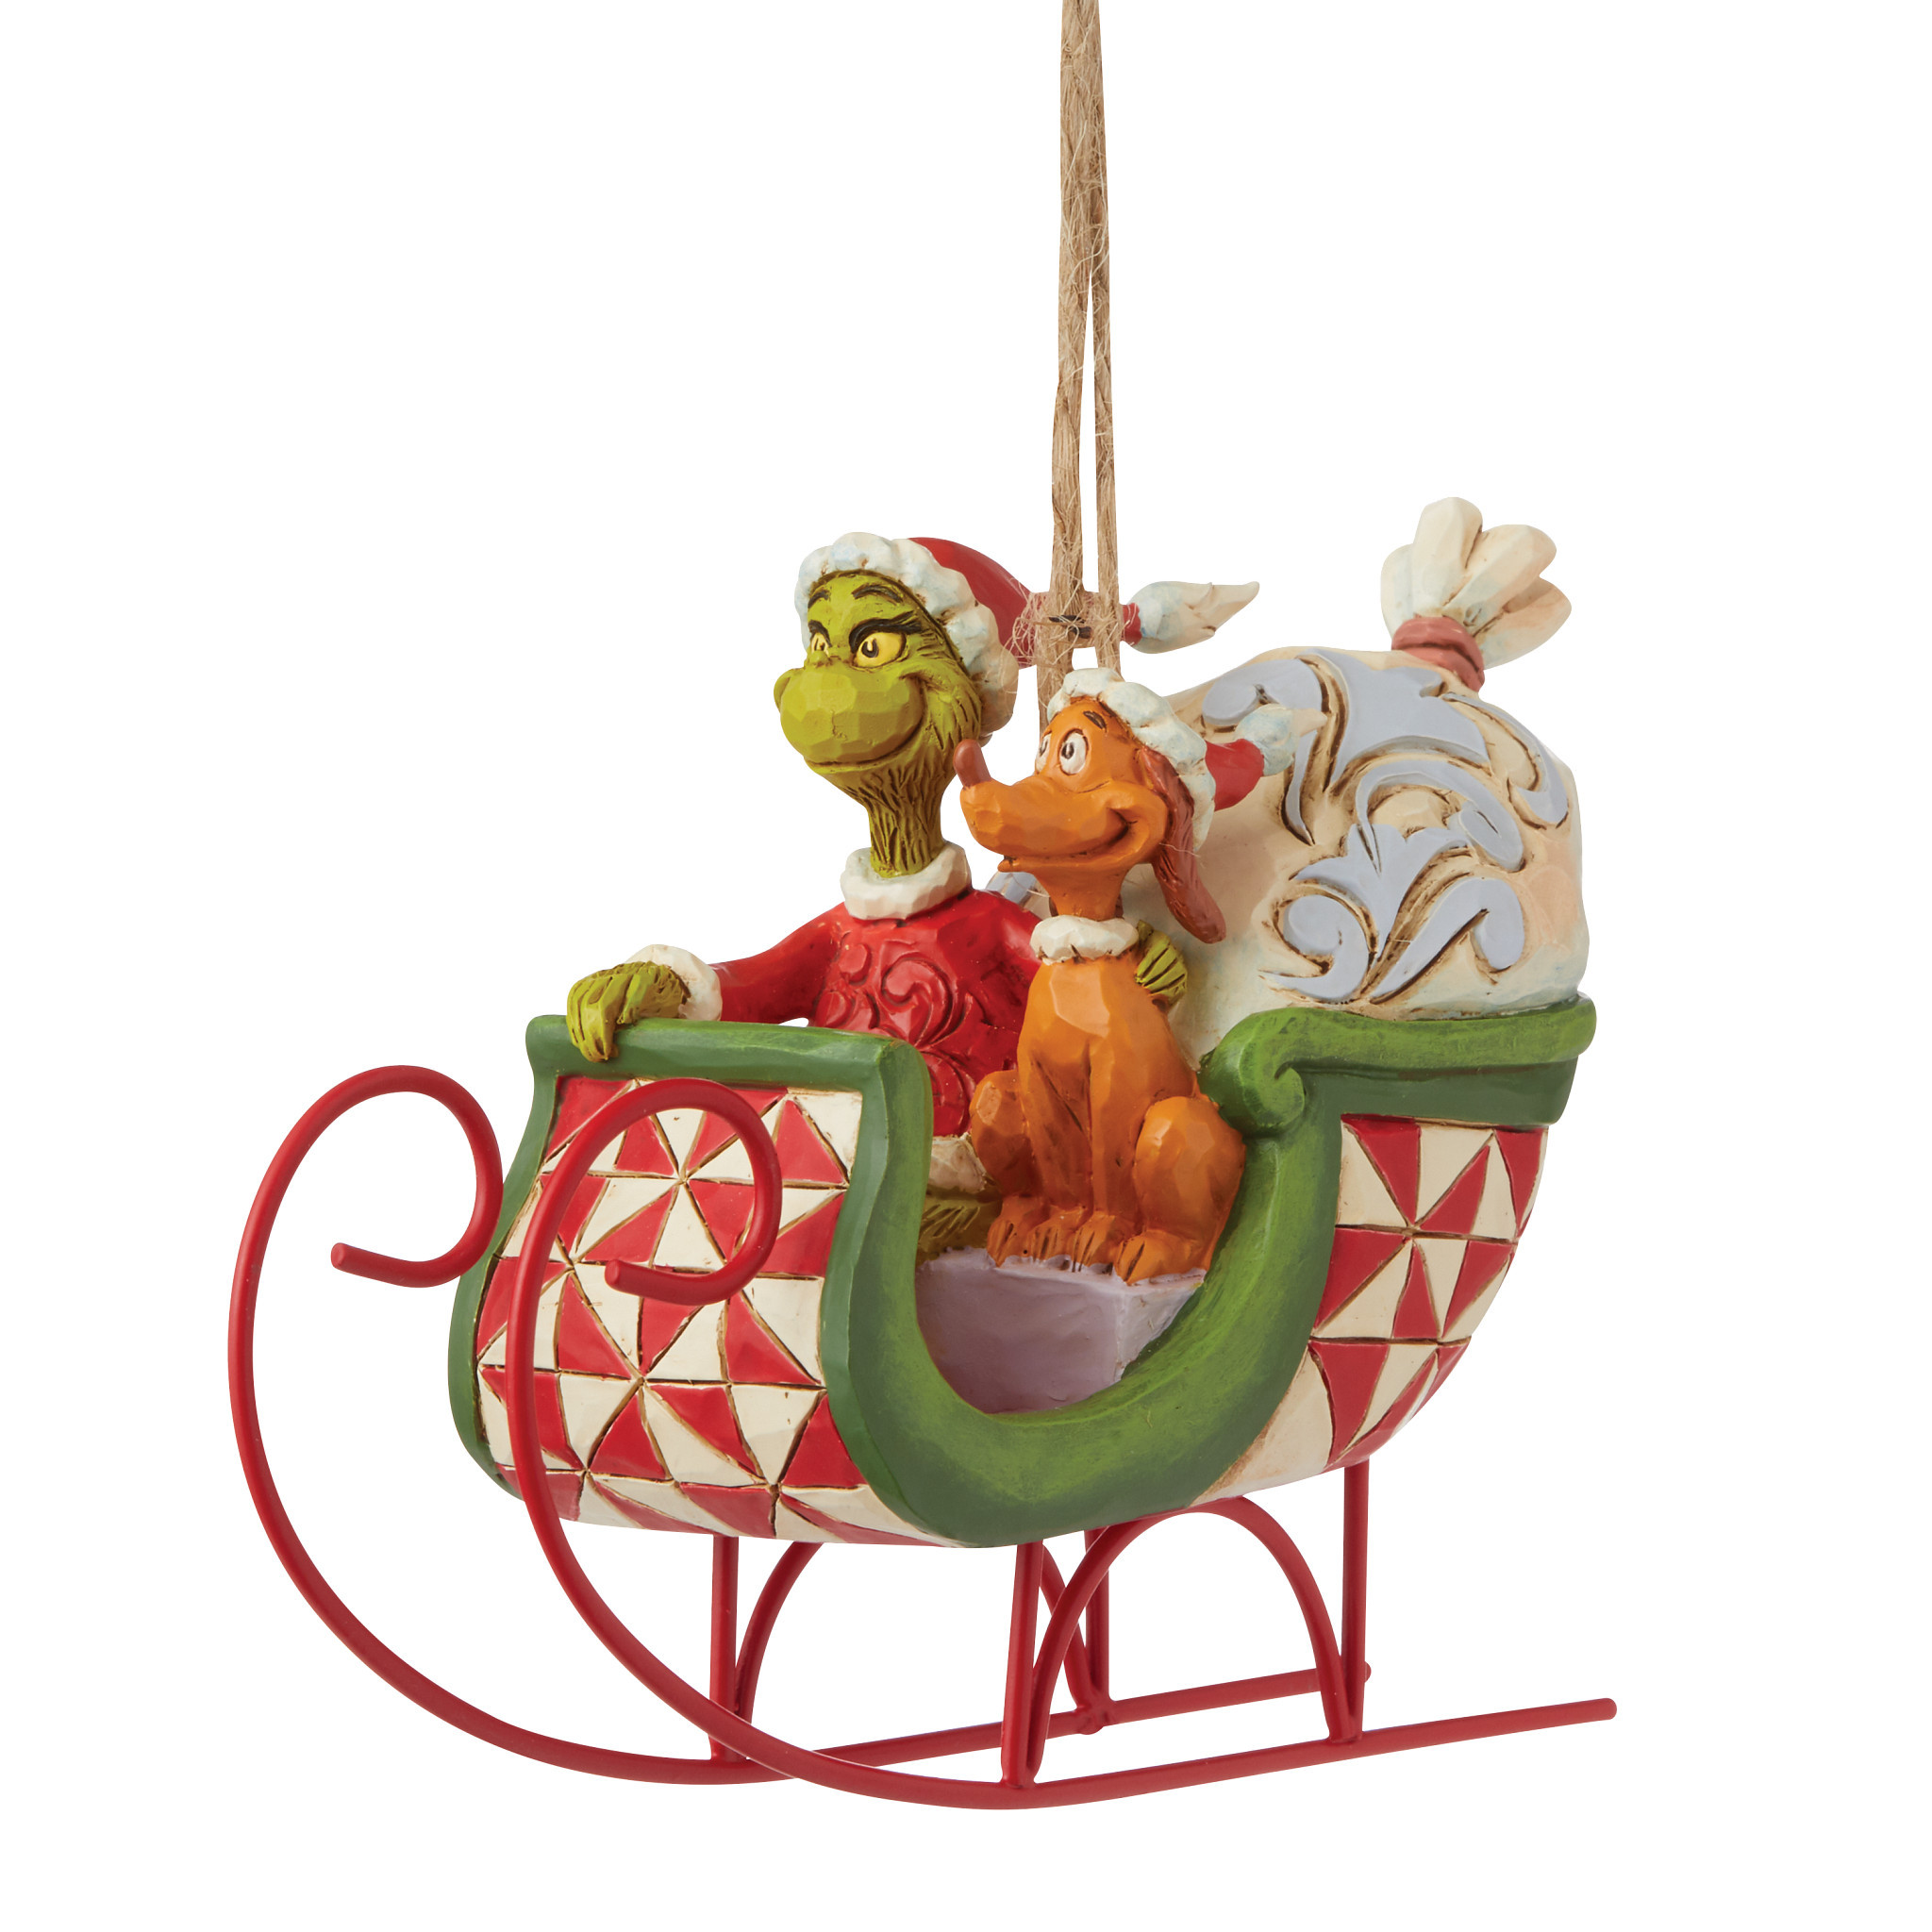 Jim Shore - Christmas Accessories 'Grinch & Max in Sleigh (Hanging Ornament) N' 2021